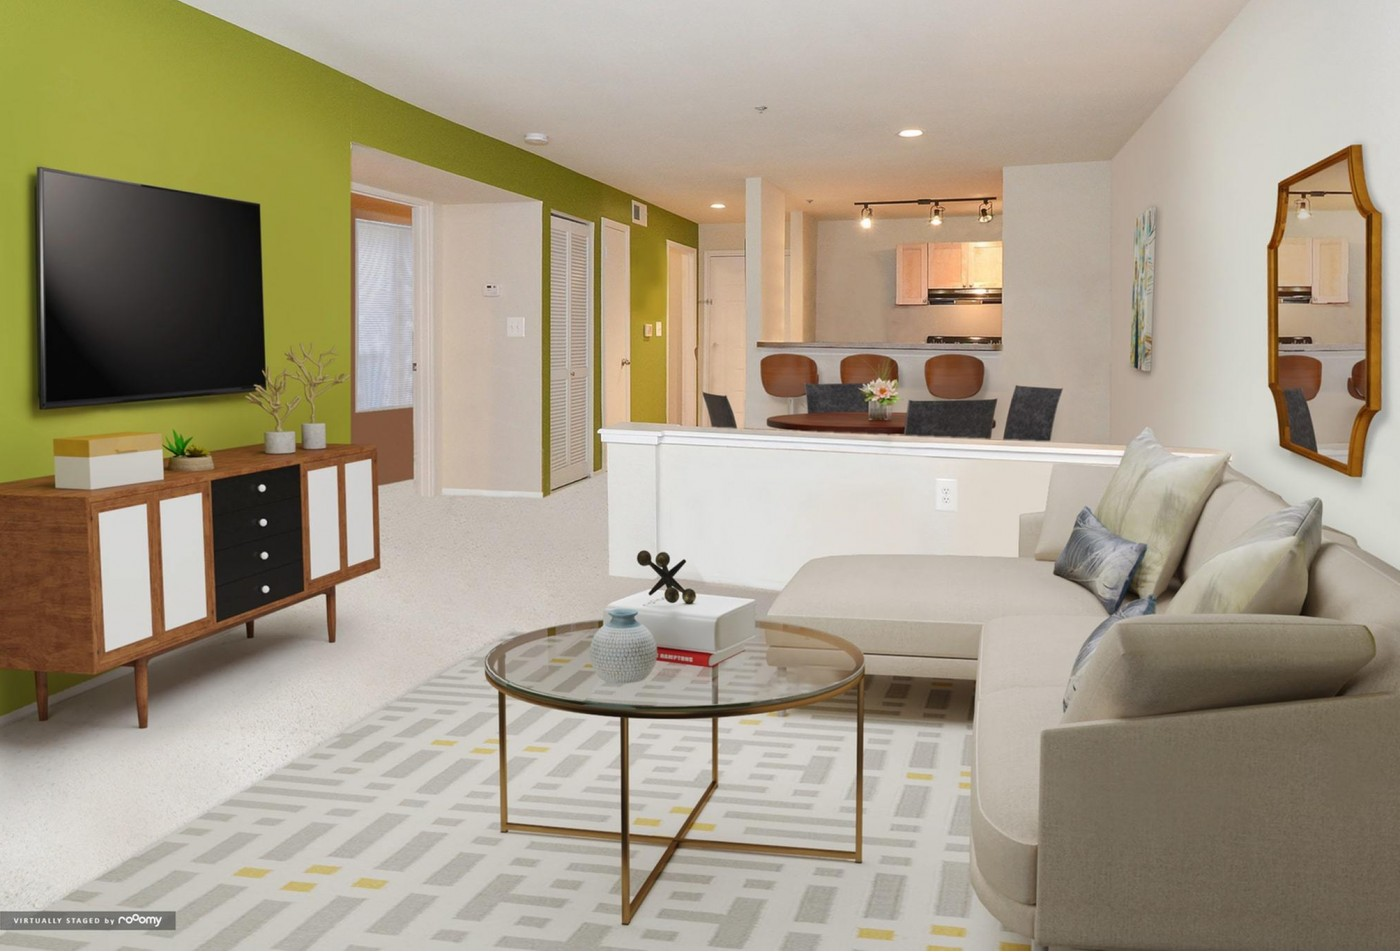 Spacious Living Room | Apartments in Baltimore, MD | Waterloo Place Apartments